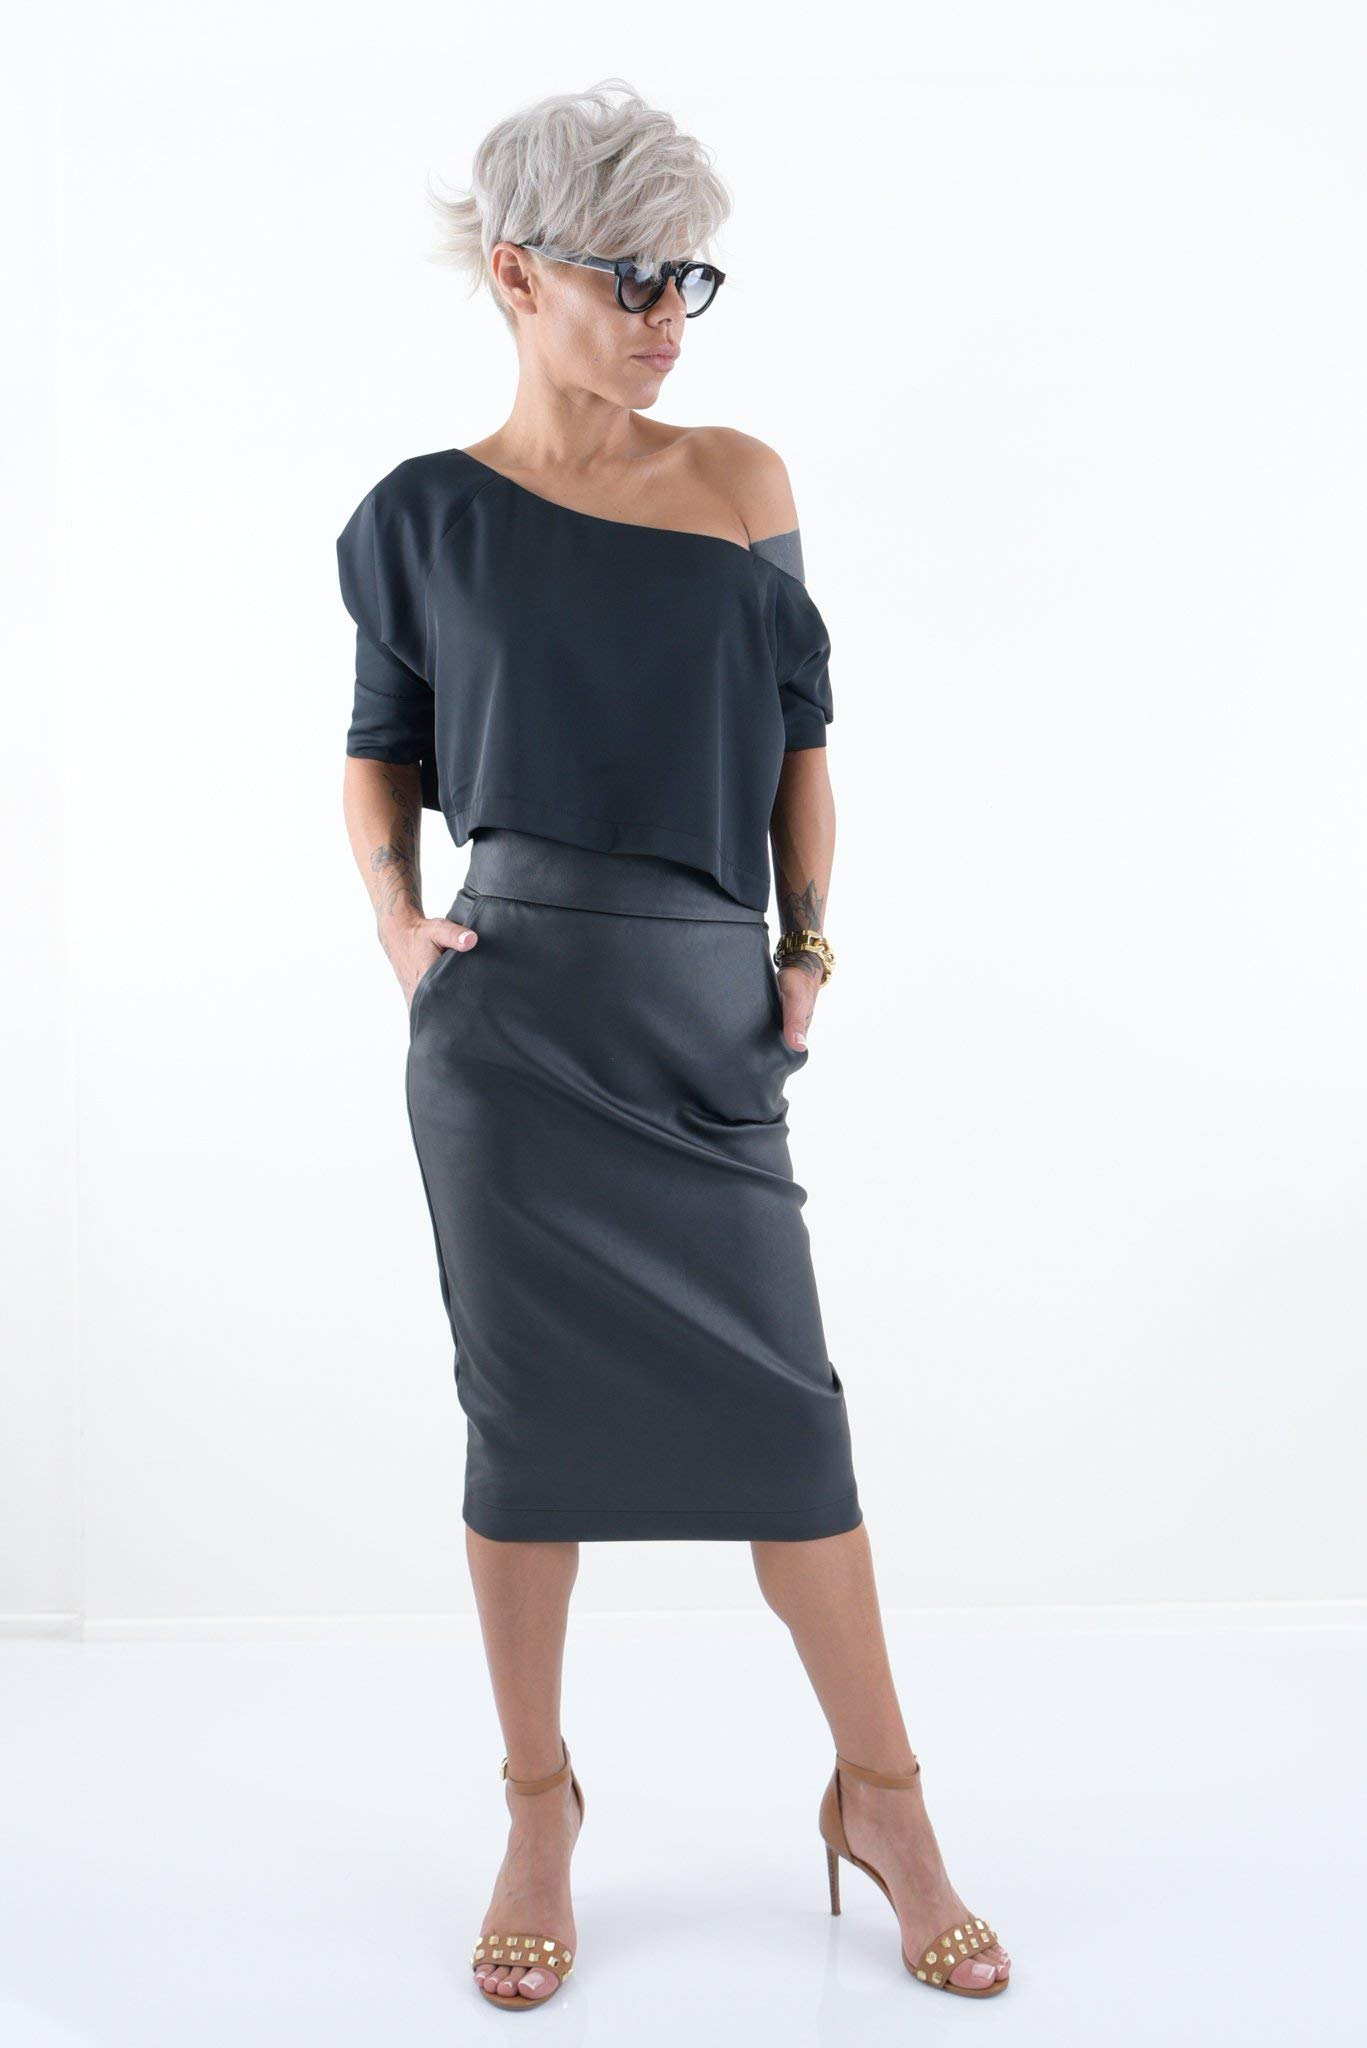 LOCKERROOM Pencil High Waist Black Midi Women Office Skirt with Pockets